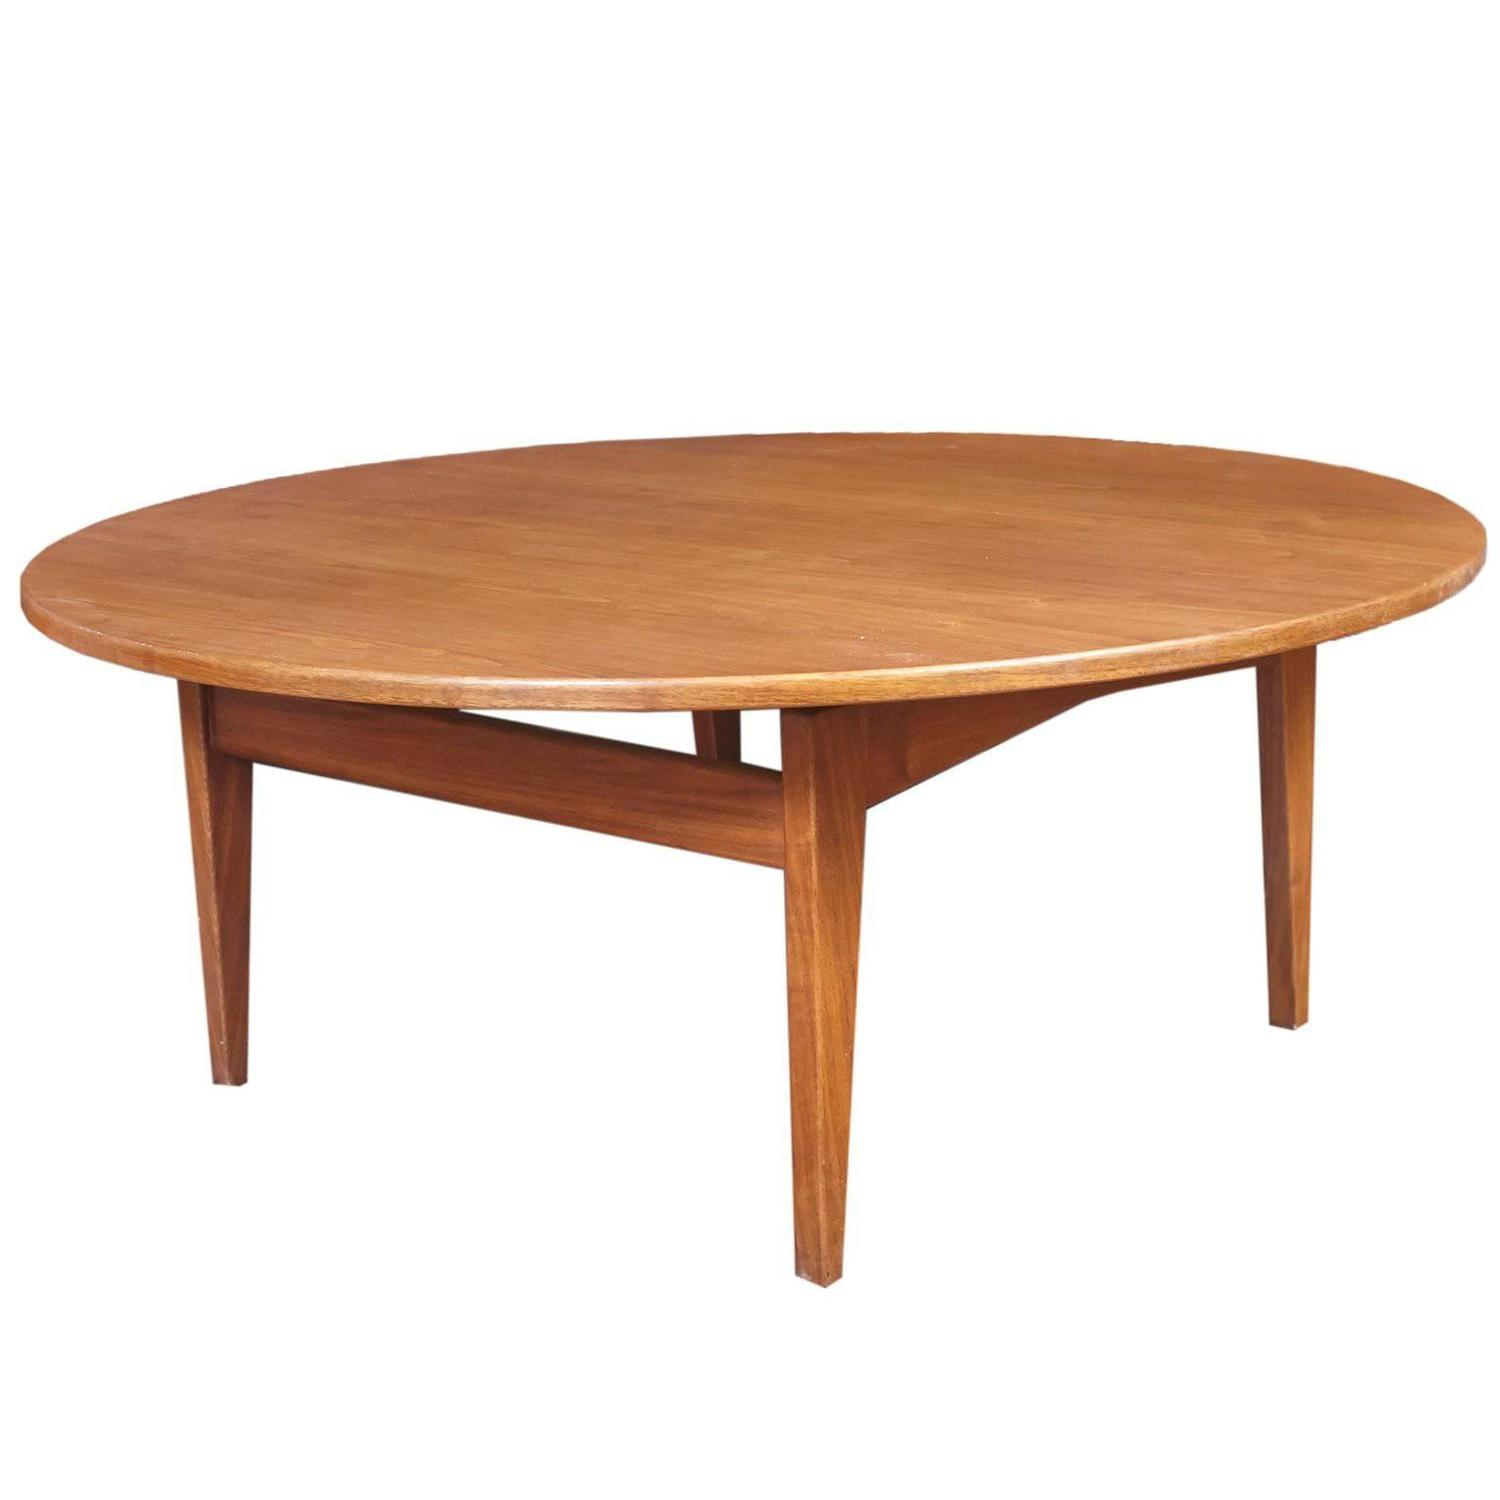 Jens Risom Round Walnut Coffee Table For Sale at 1stdibs